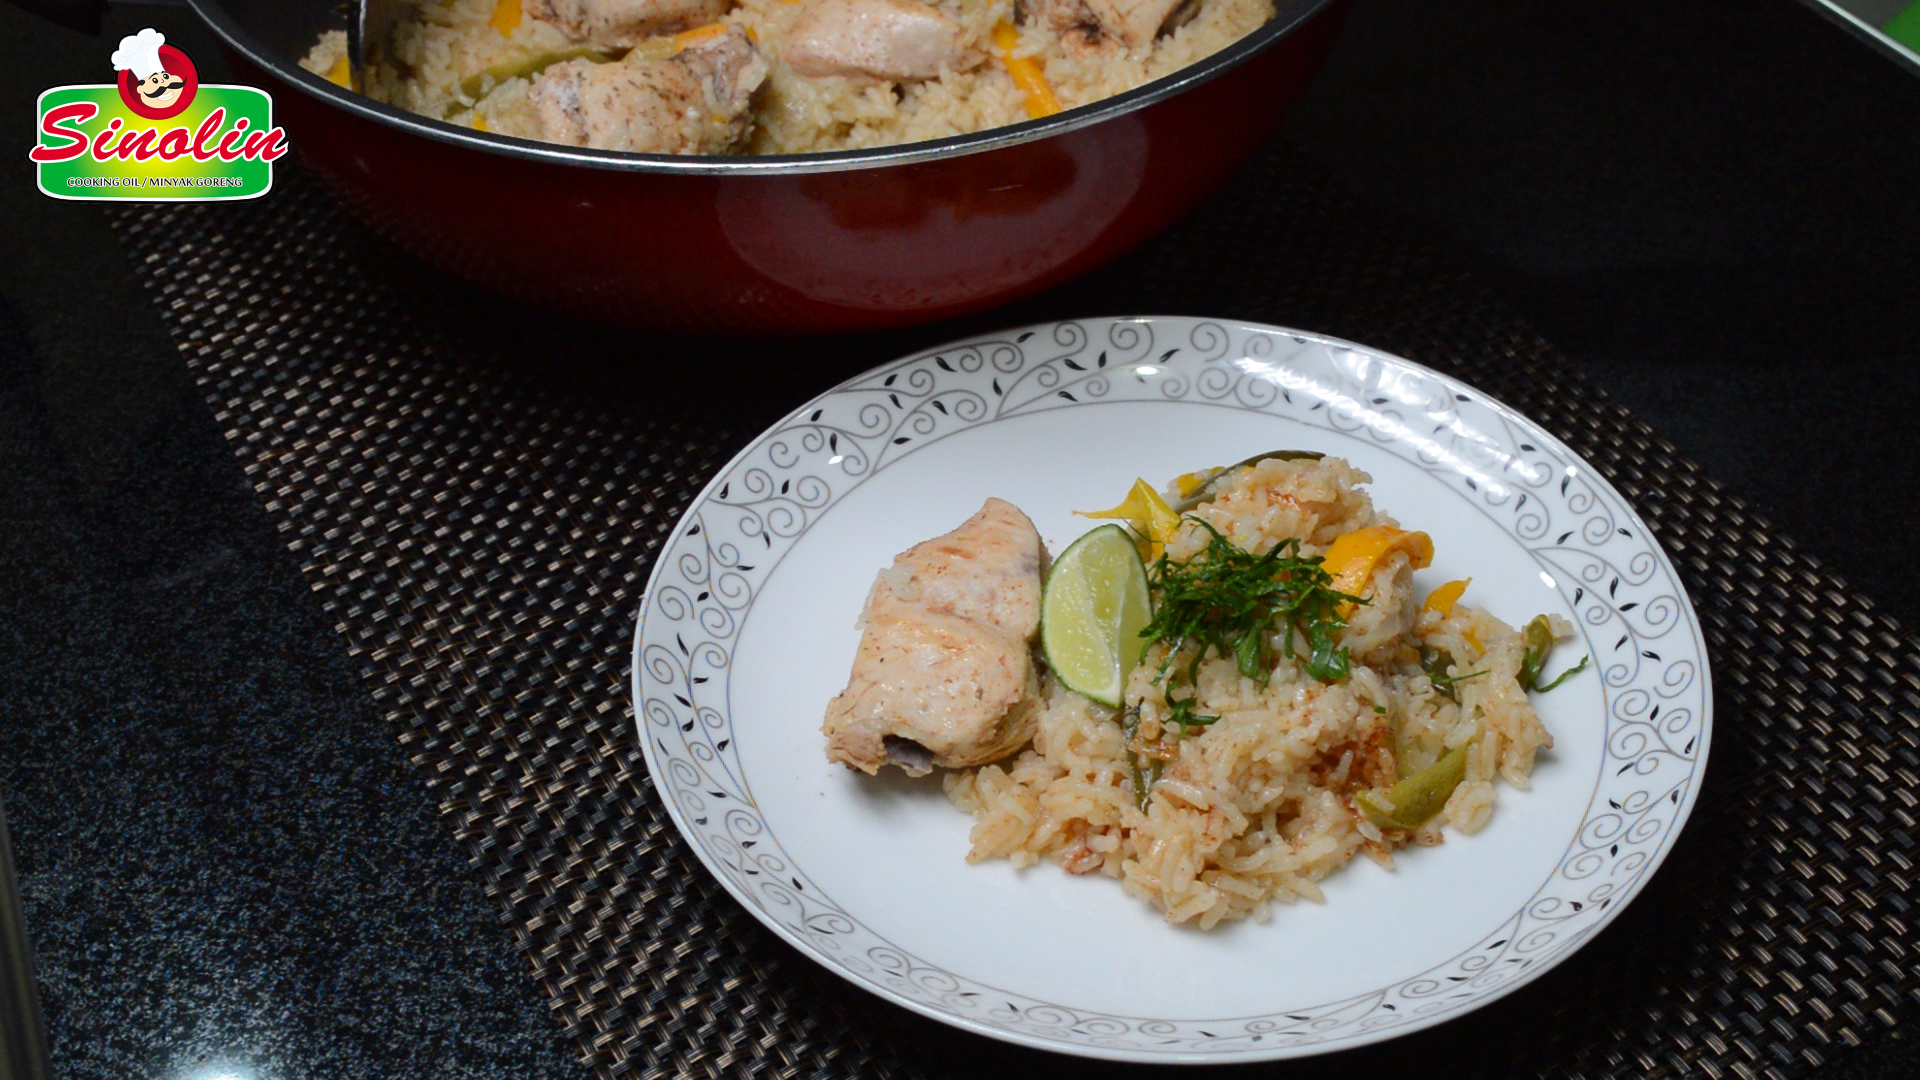 Fajita Chicken and Rice Dinner by Dapur Sinolin